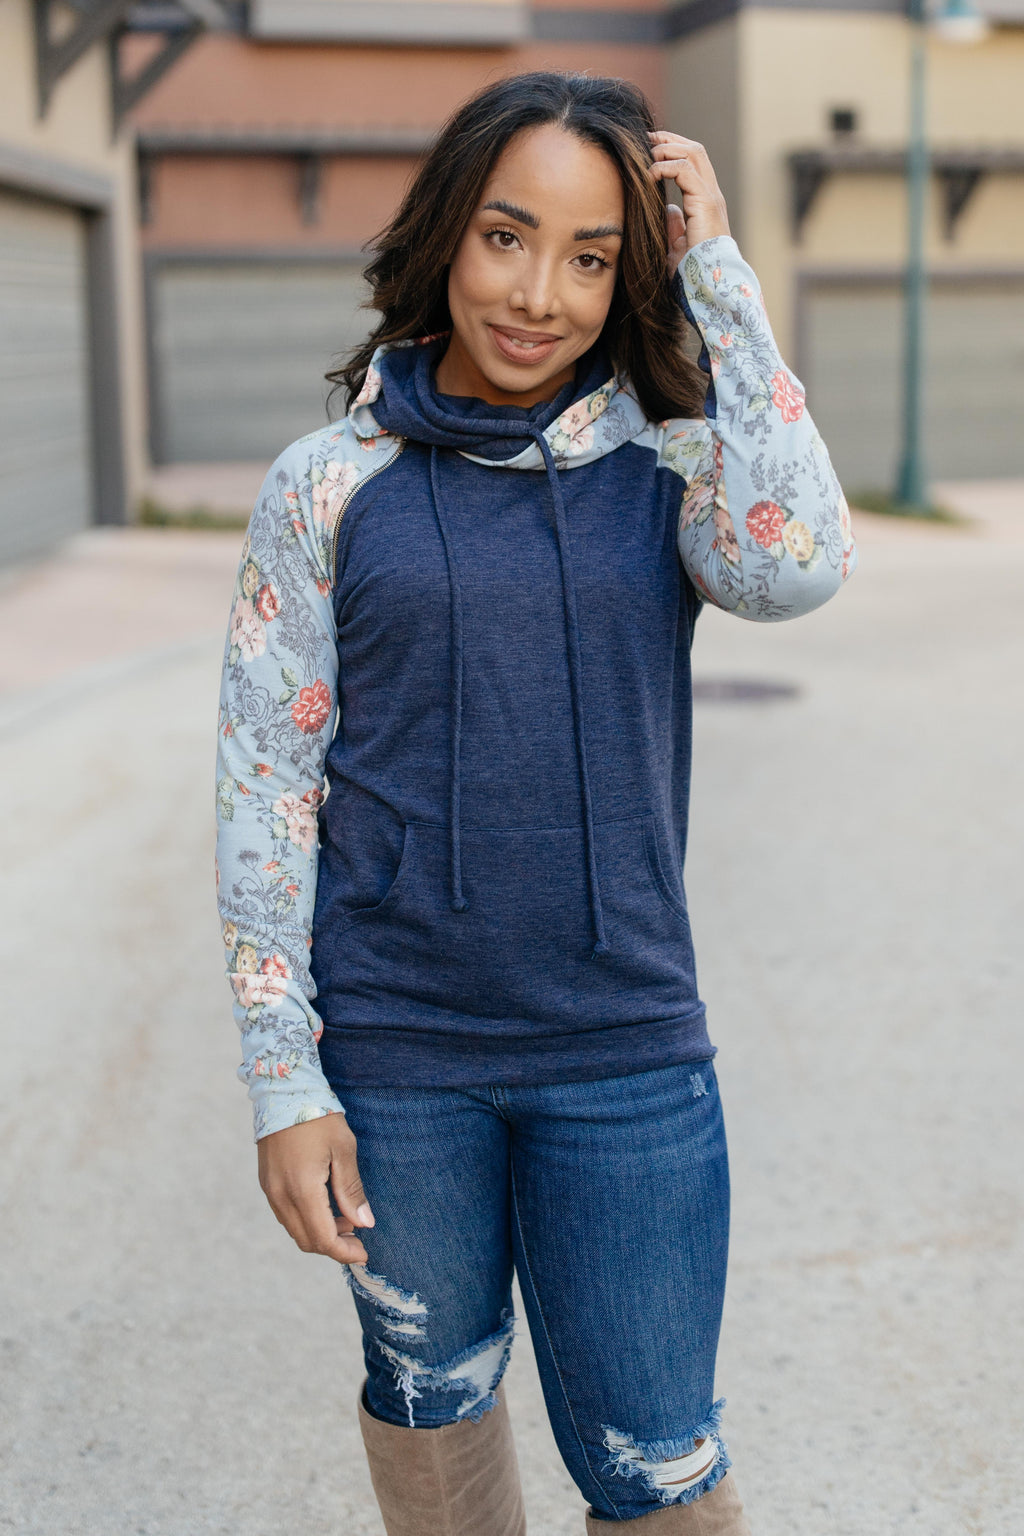 Bits Of Floral And A Zipper Hoodie-11-30-2020, 1XL, 2XL, 3XL, CMDB2020, Group A, Group B, Group C, Group X, Large, Medium, Small, Tops, XL, XS-Womens Artisan USA American Made Clothing Accessories